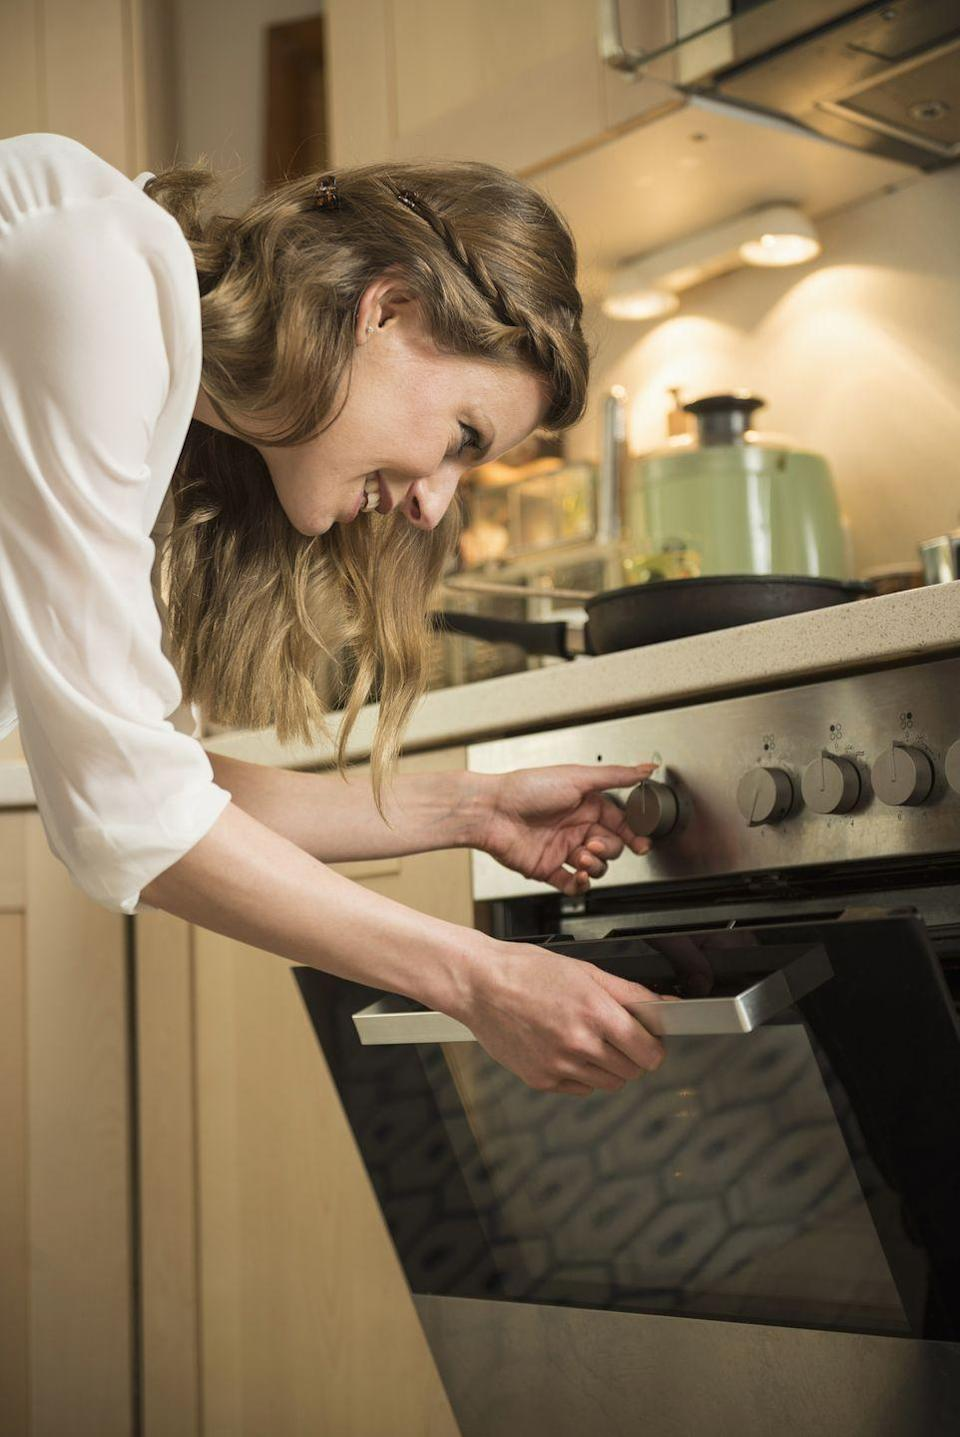 """<p>It sounds obvious, but it's so easy to forget to turn your oven on first thing. """"How often do you prep everything and then realize you forgot to put the oven on, so now you have to wait 20 minutes to get cooking?"""" Tchinnis points out. """"Same goes for the grill."""" </p><p>And the same goes for anything else that will take some time. """"A surefire way to take a 10 minute meal to a 20 minute meal is waiting for your pasta water to boil. Before I start the cooking process, I make sure my oven is fired, pans are heating, or water is coming to a boil. Then, when I'm ready to cook, there's no unnecessary waiting,"""" says chef <a href=""""https://www.instagram.com/dennistheprescott/"""" rel=""""nofollow noopener"""" target=""""_blank"""" data-ylk=""""slk:Dennis Prescott"""" class=""""link rapid-noclick-resp"""">Dennis Prescott</a>, co-host of the Netflix original series <em>Restaurants on the Edge. </em></p>"""